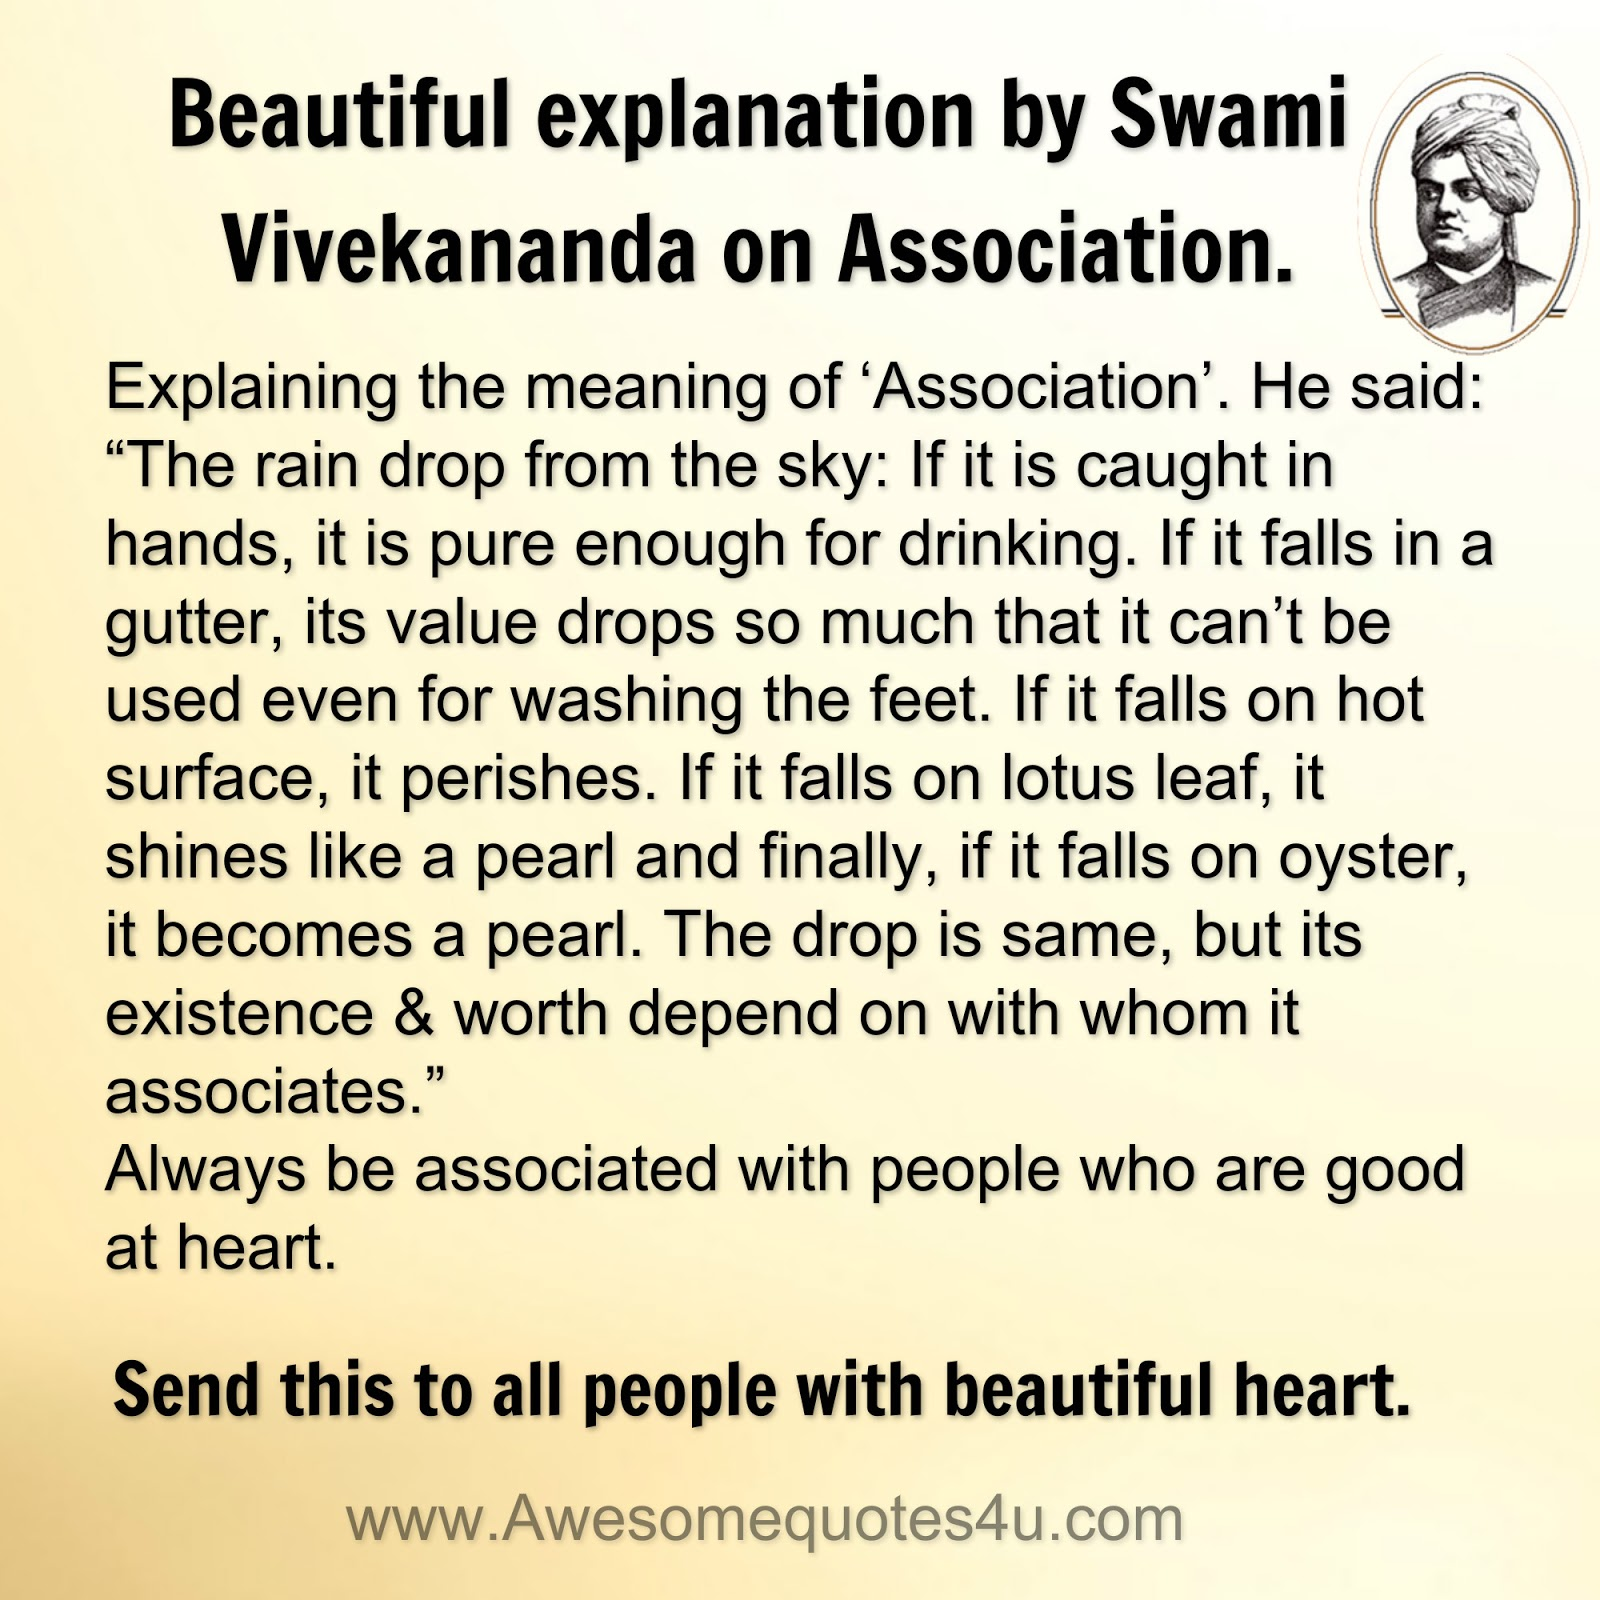 Awesome Quotes Beautiful Explanation By Swami Vivekananda On